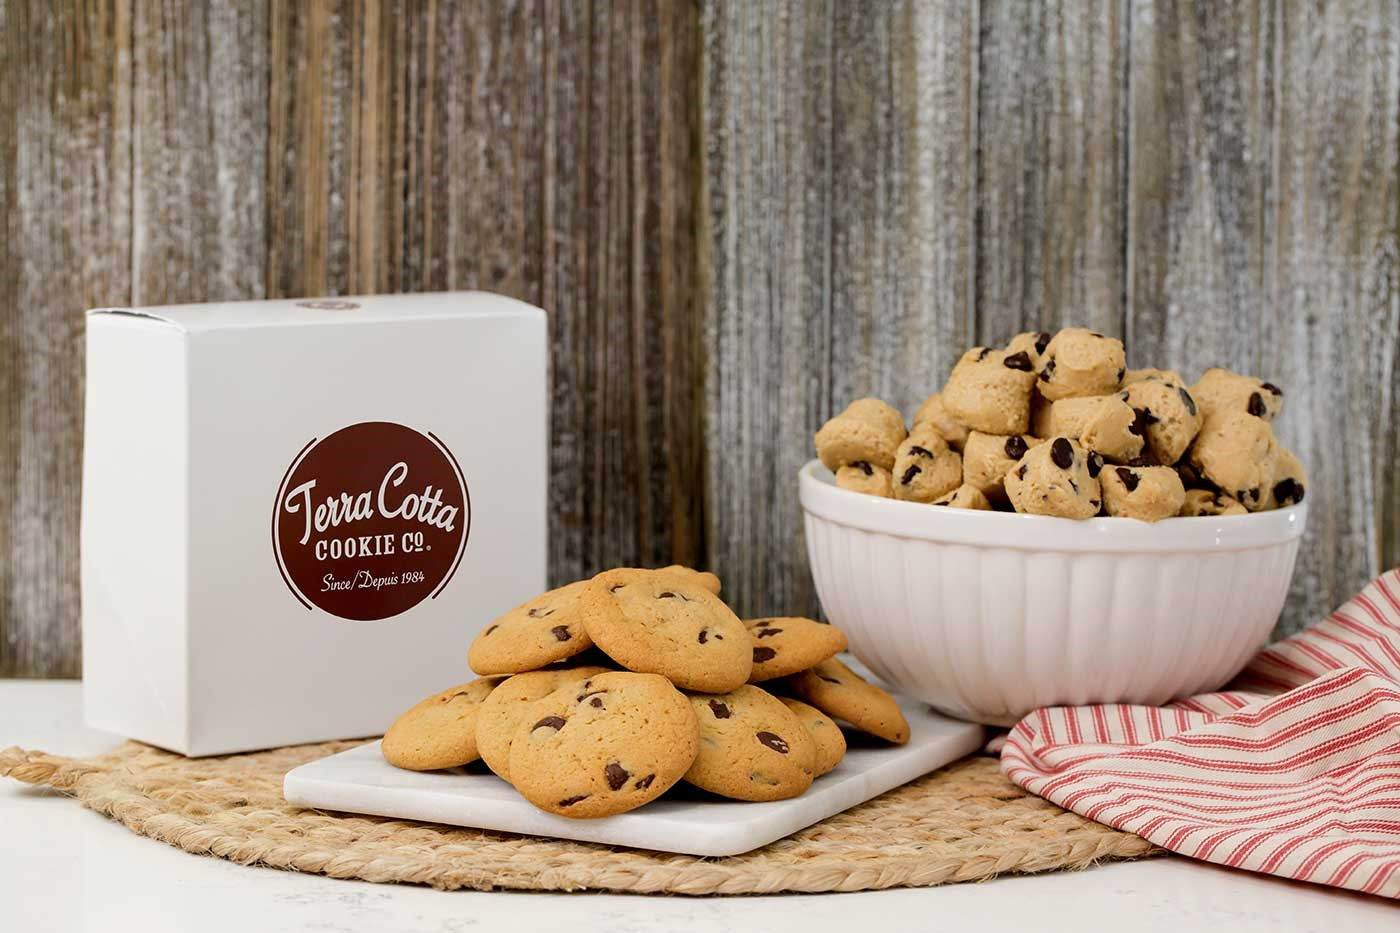 Cookies are present on a plate with a box nearby labelled 'Terra Cotta Cookie Co.'